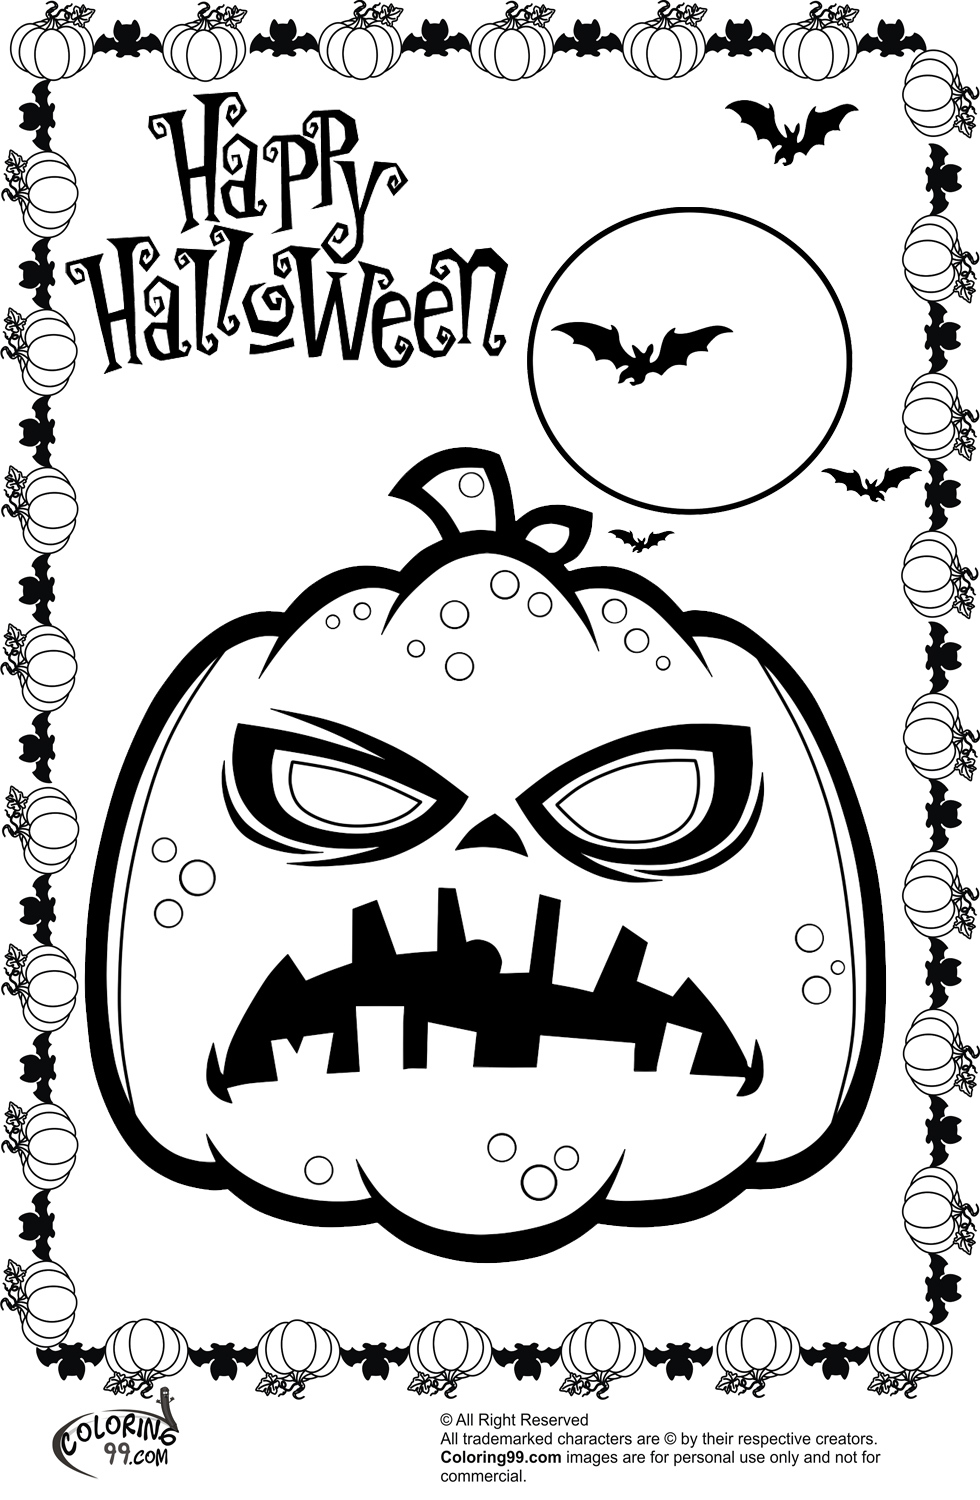 holloween moon coloring pages - photo#25